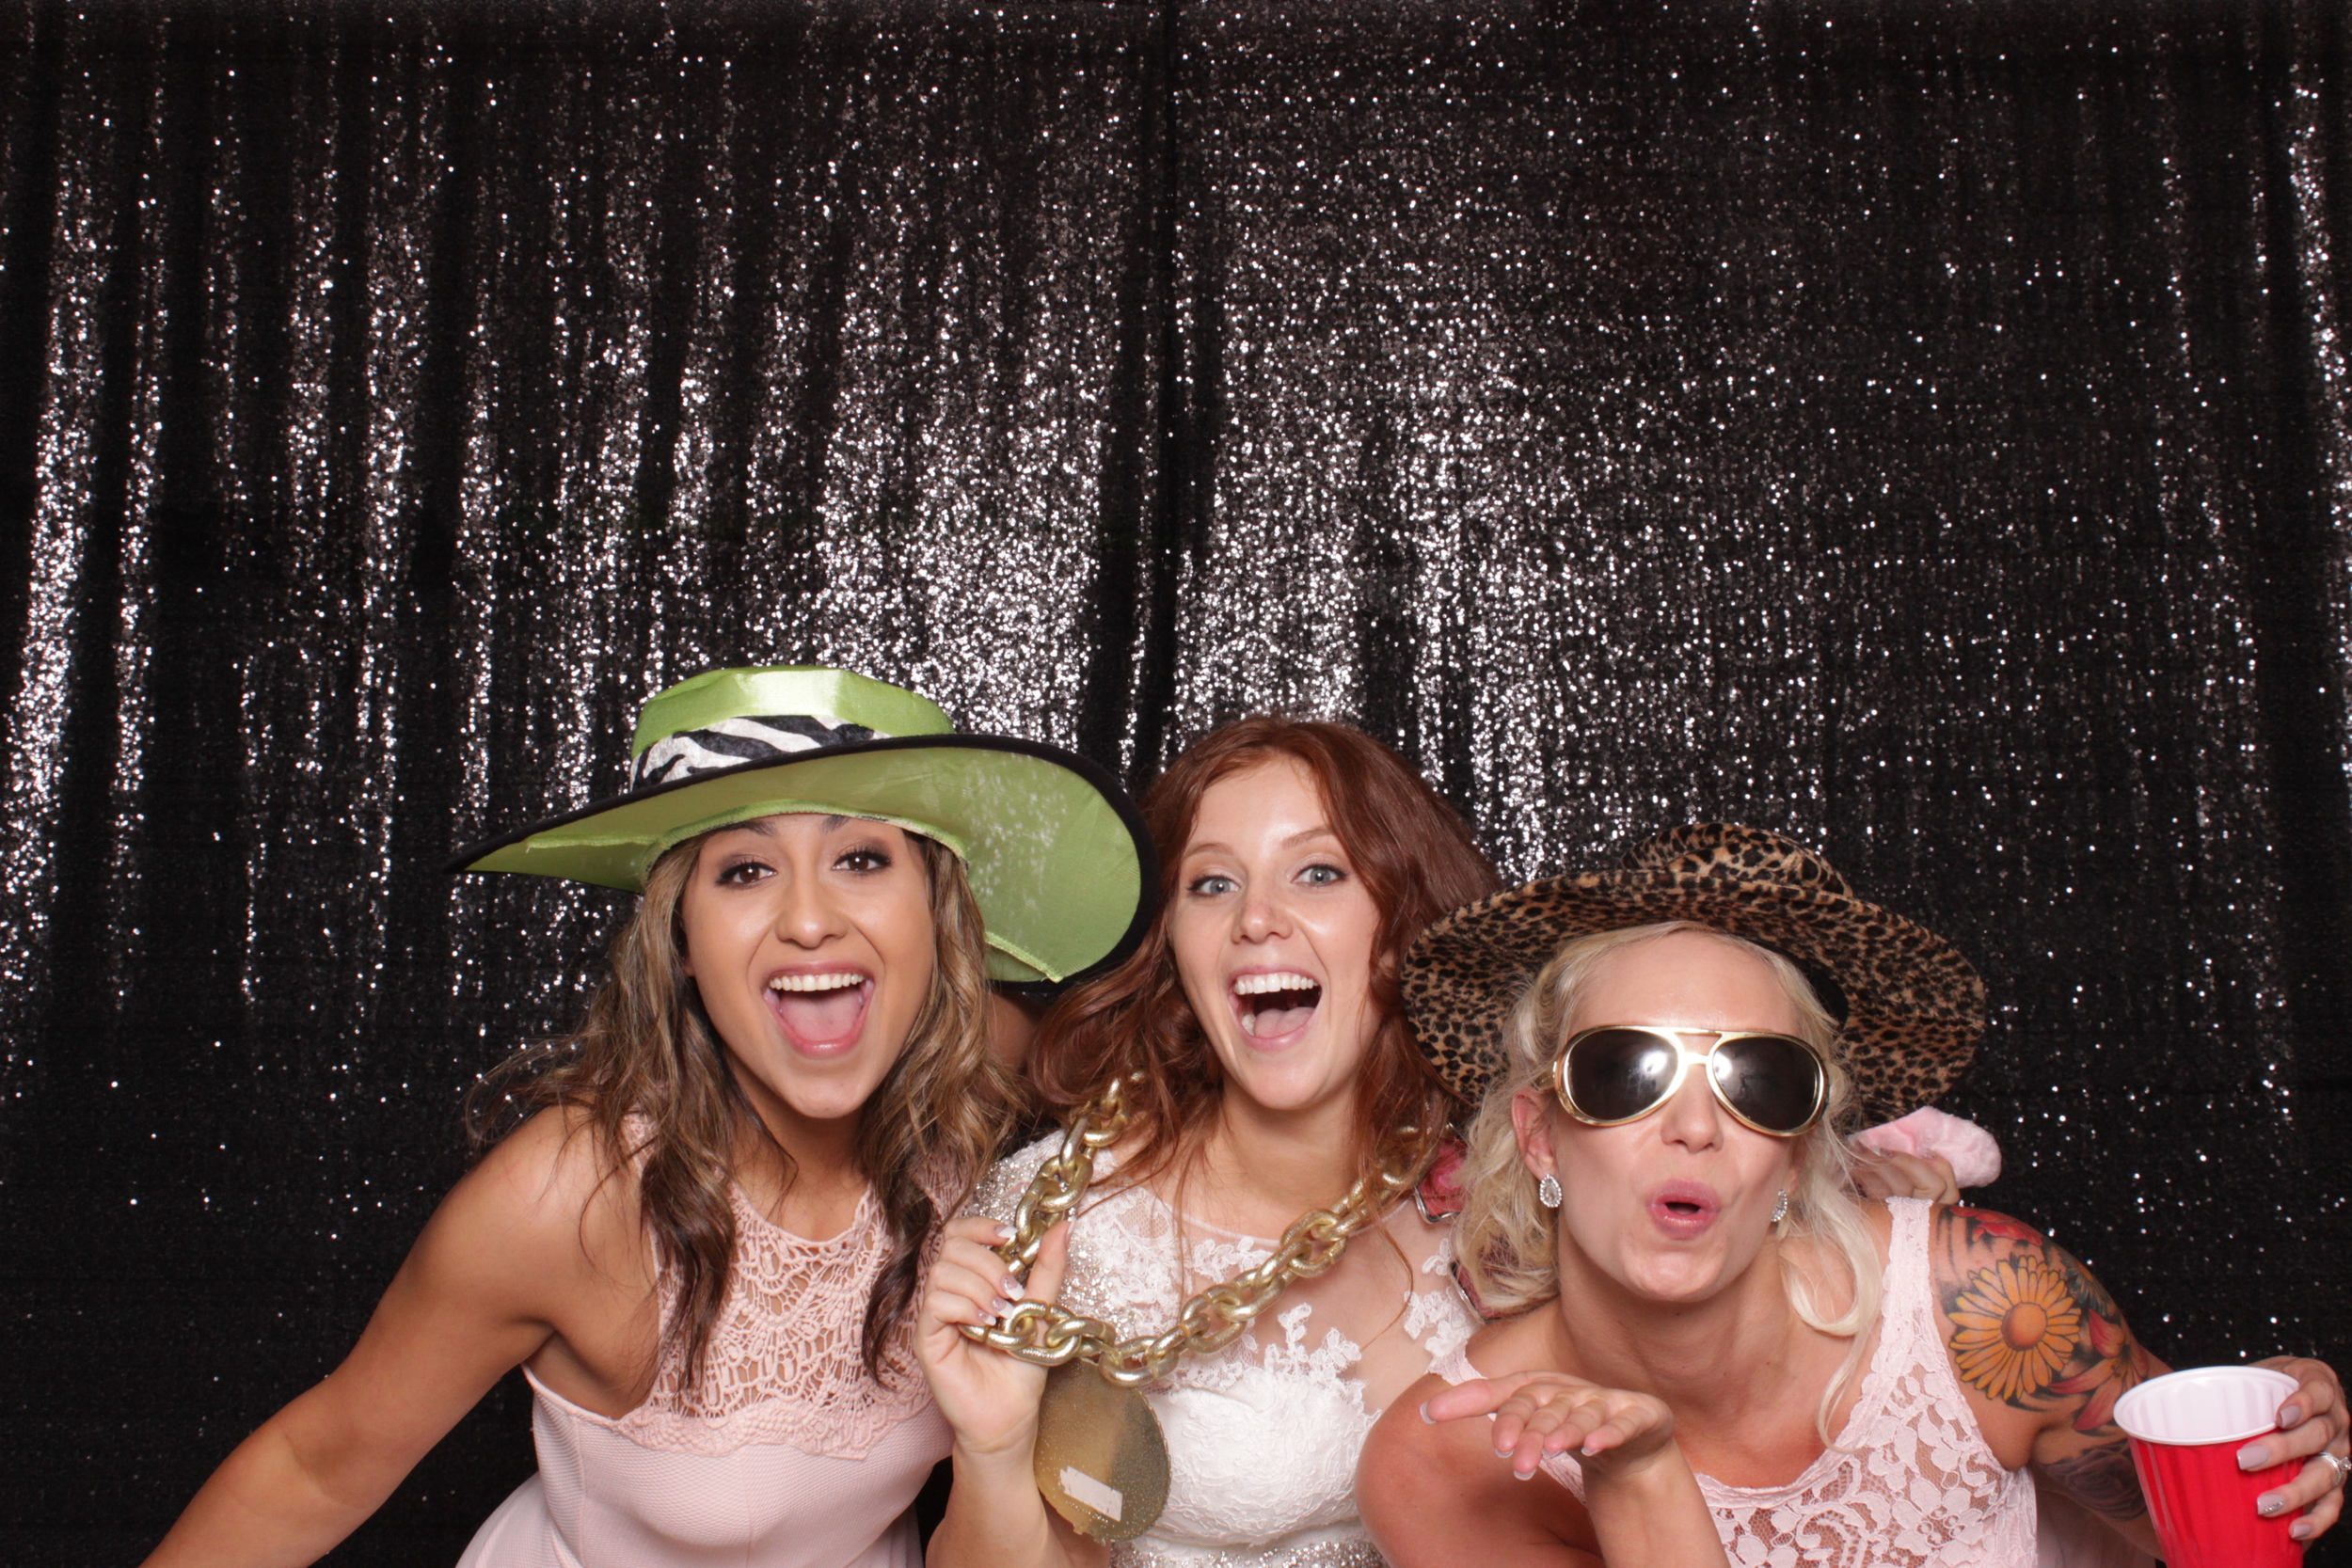 wedding-chico-open-air-photo-booth-bride-and-friends